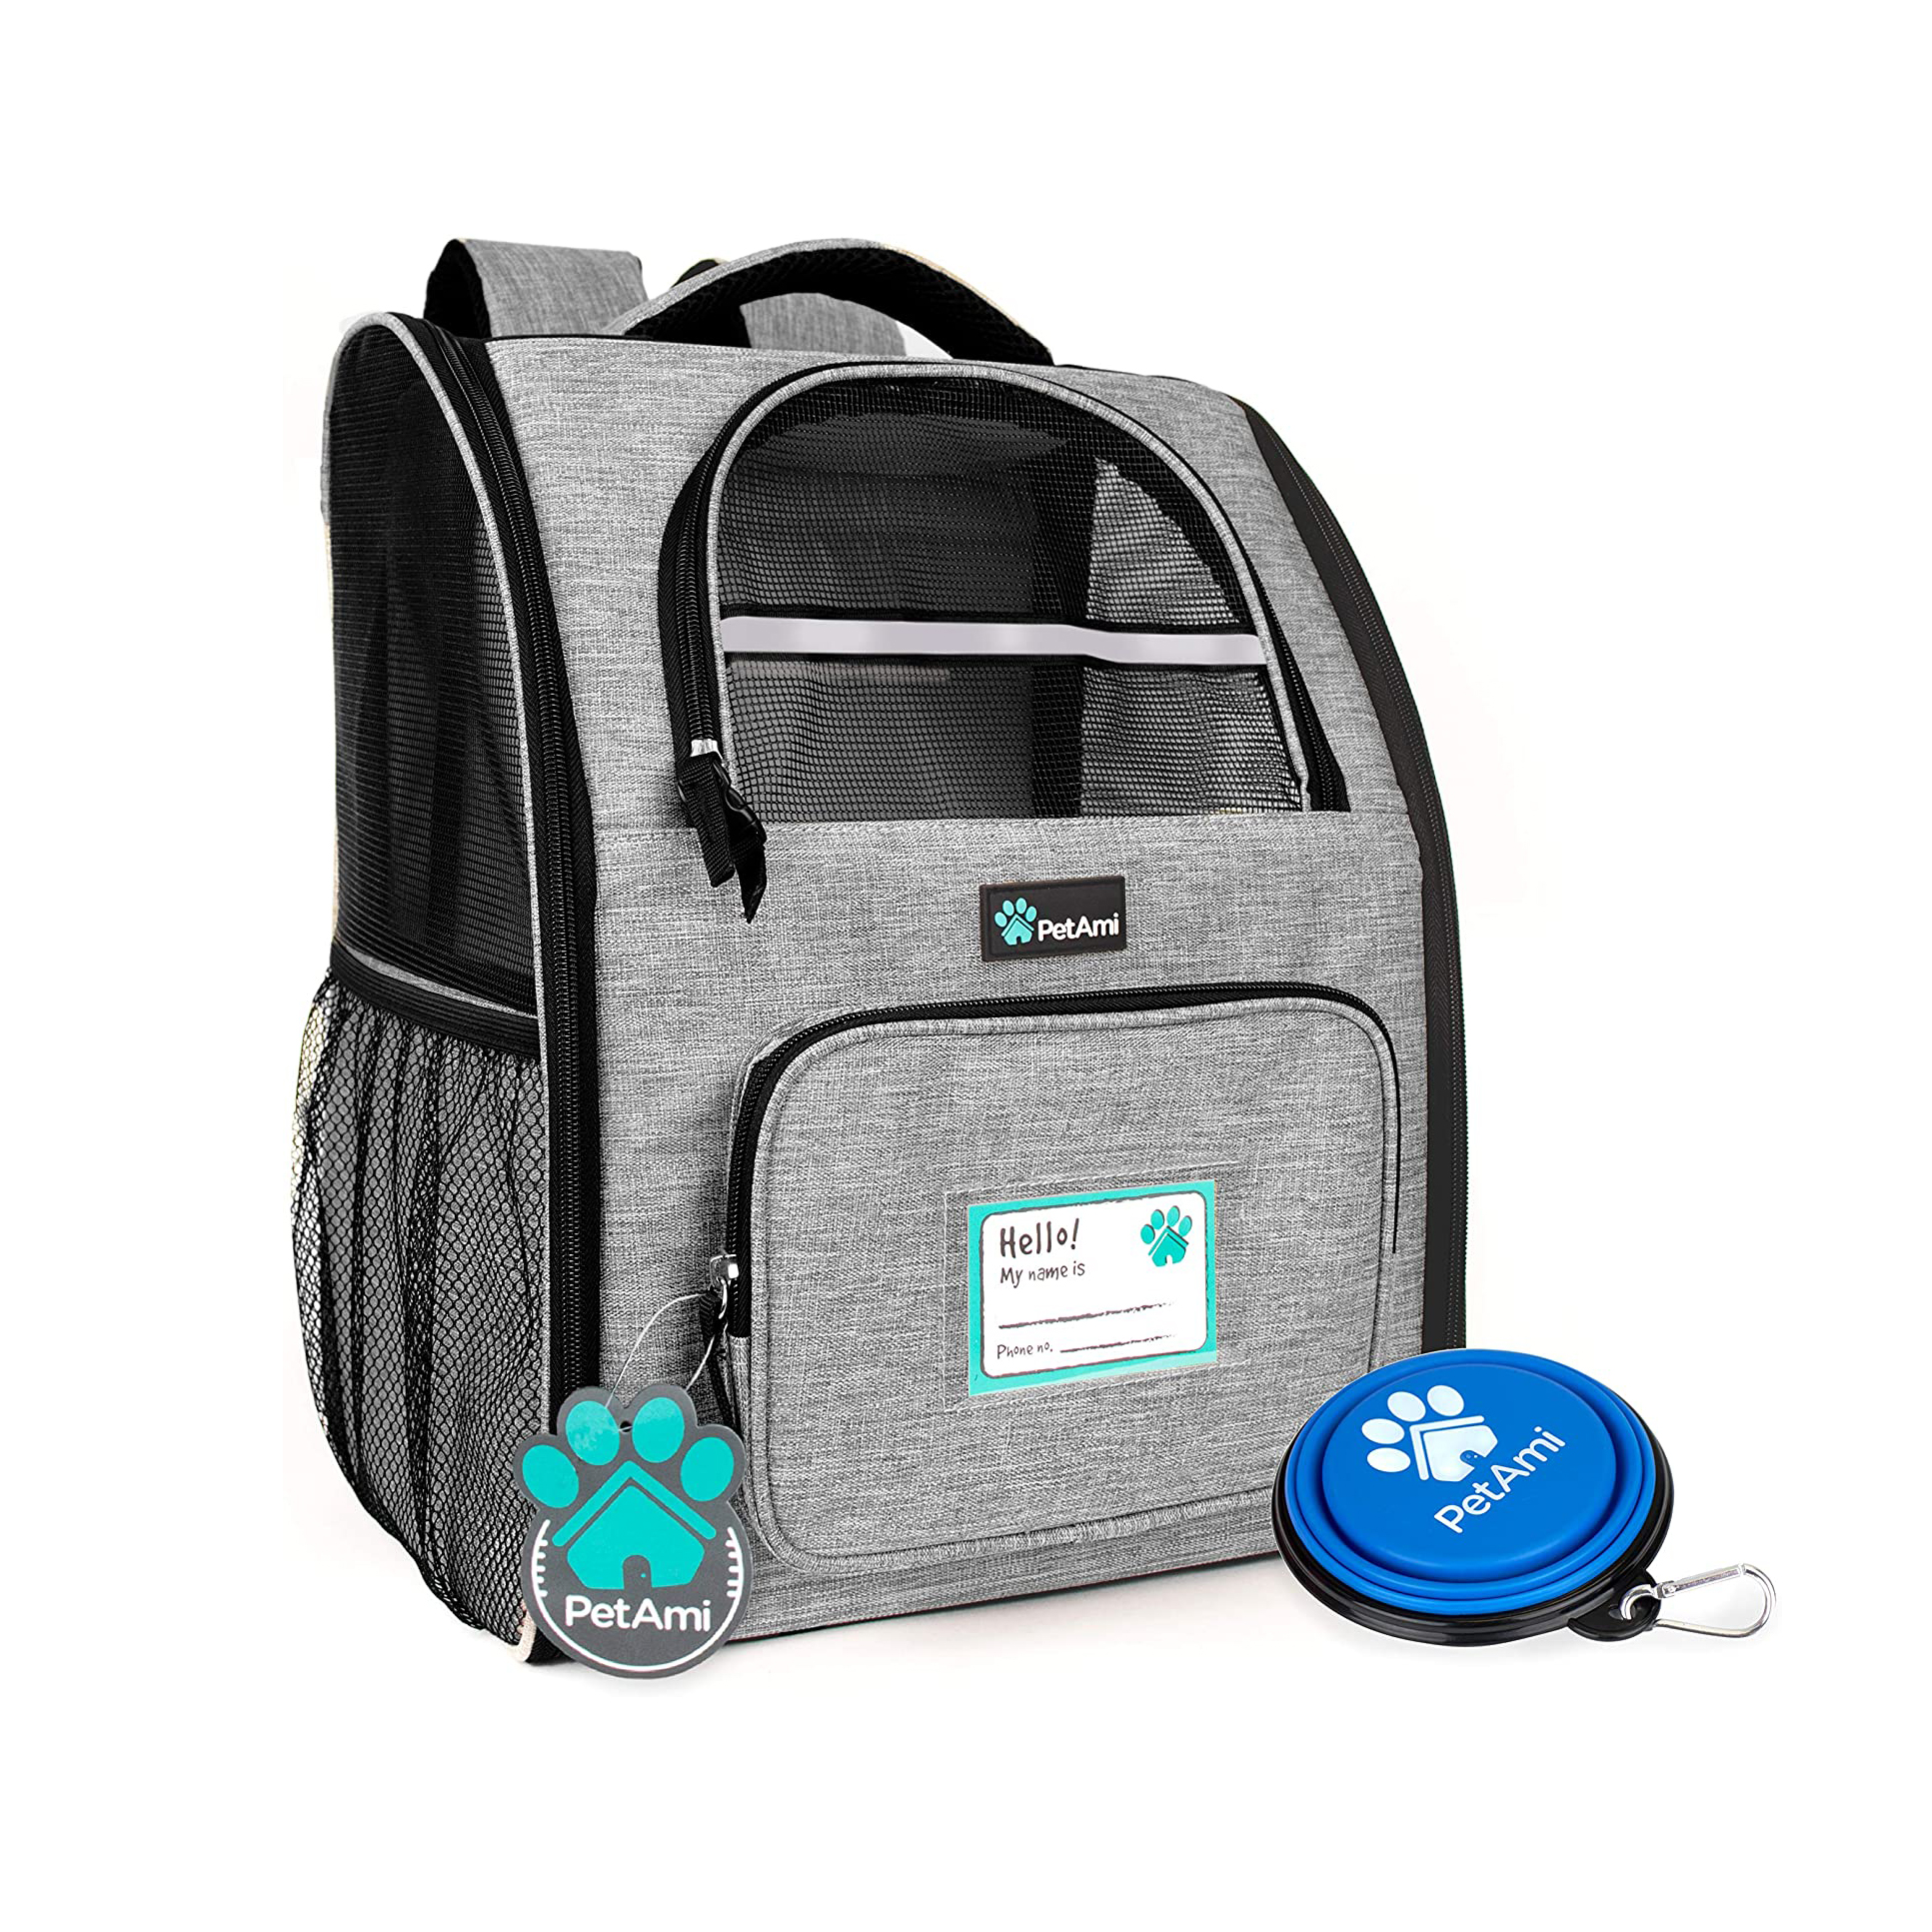 petami-deluxe-pet-carrier-backpack-for-small-cats